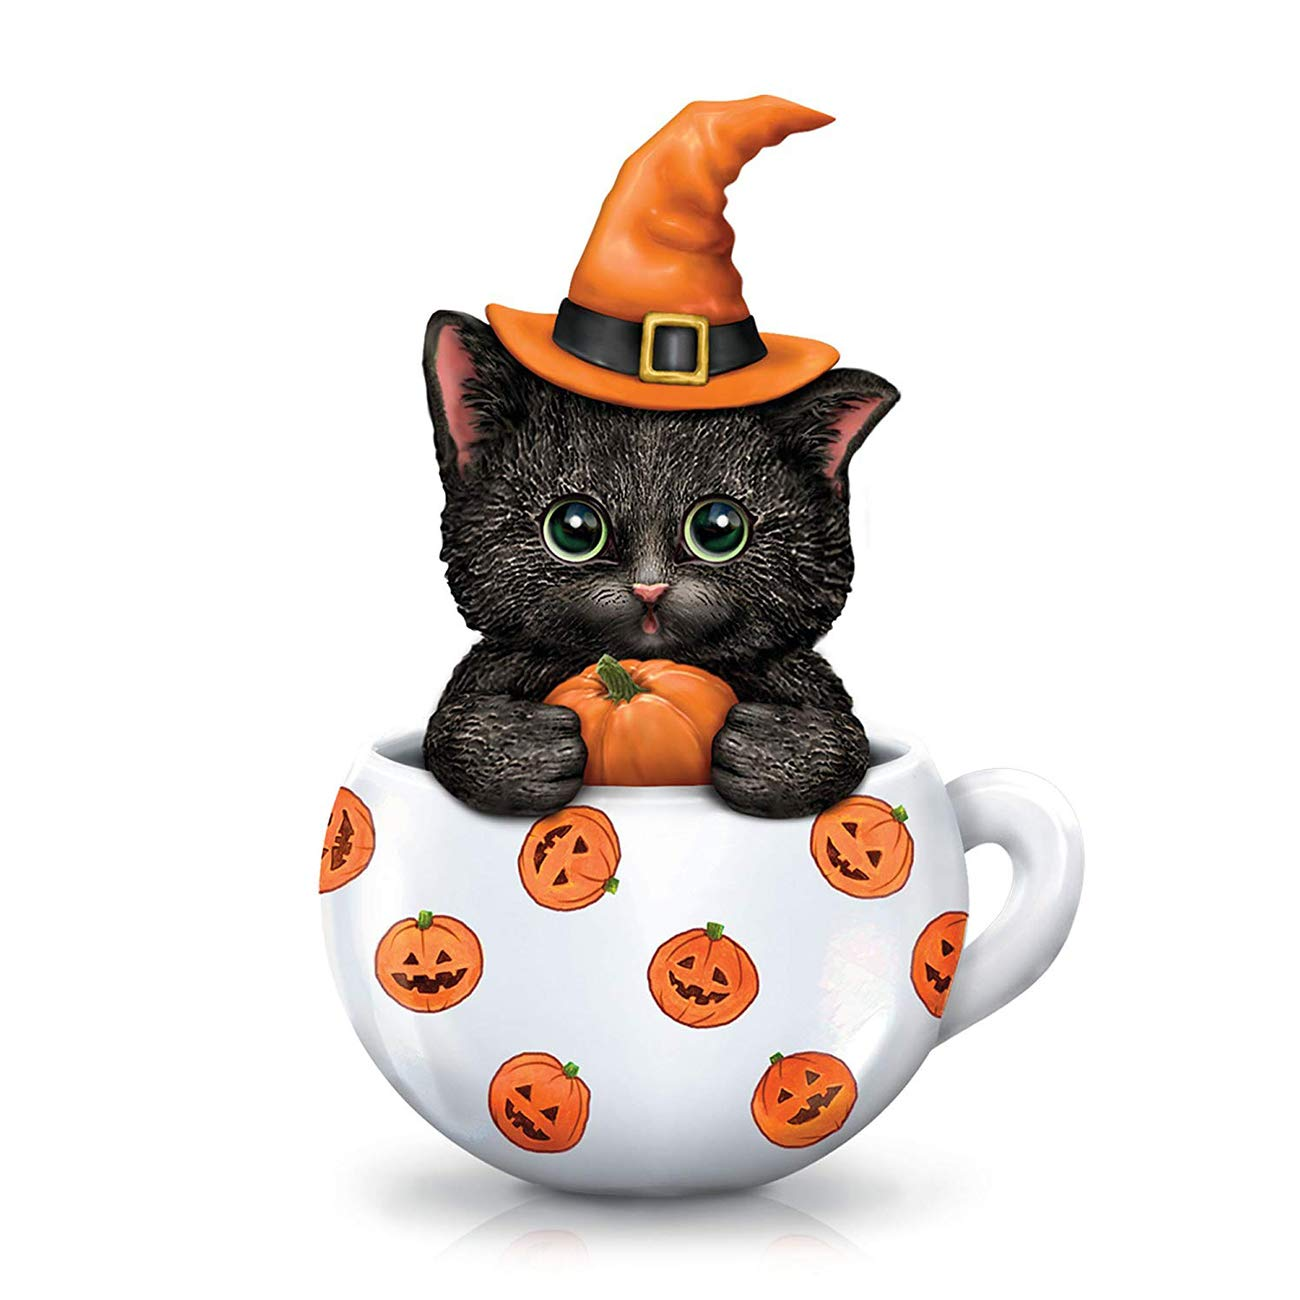 5D Diamond Painting Full Drill Pumpkin Hat Kitten by Number Kits, DIY Rhinestone Pasted Paint Set for Arts Craft Decoration by SKRYUIE, Halloween Cup Cat (12x16inch, 30x40cm)